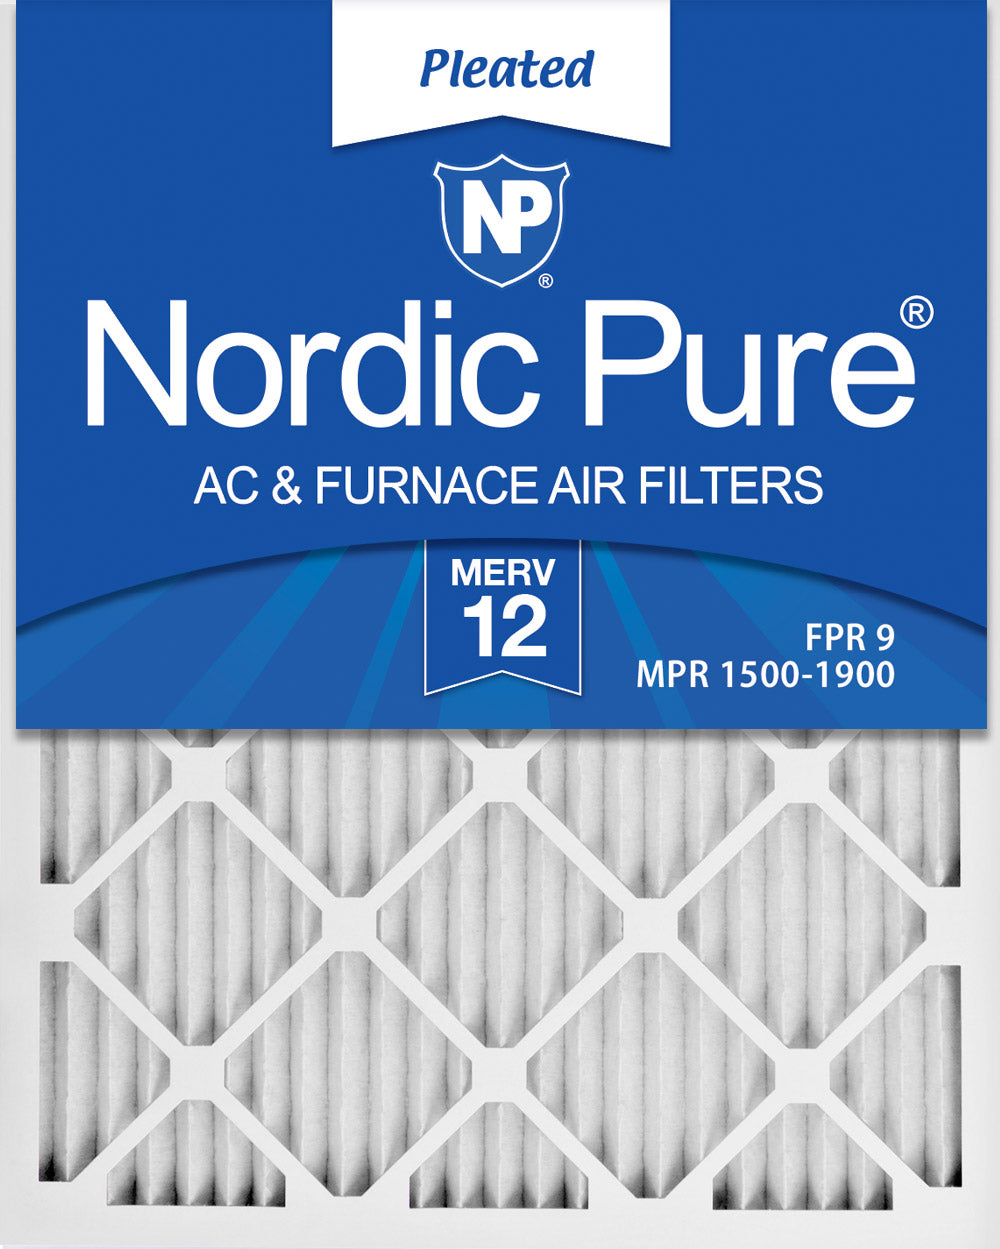 14x25x1 Pleated MERV 12 Air Filters 12 Pack